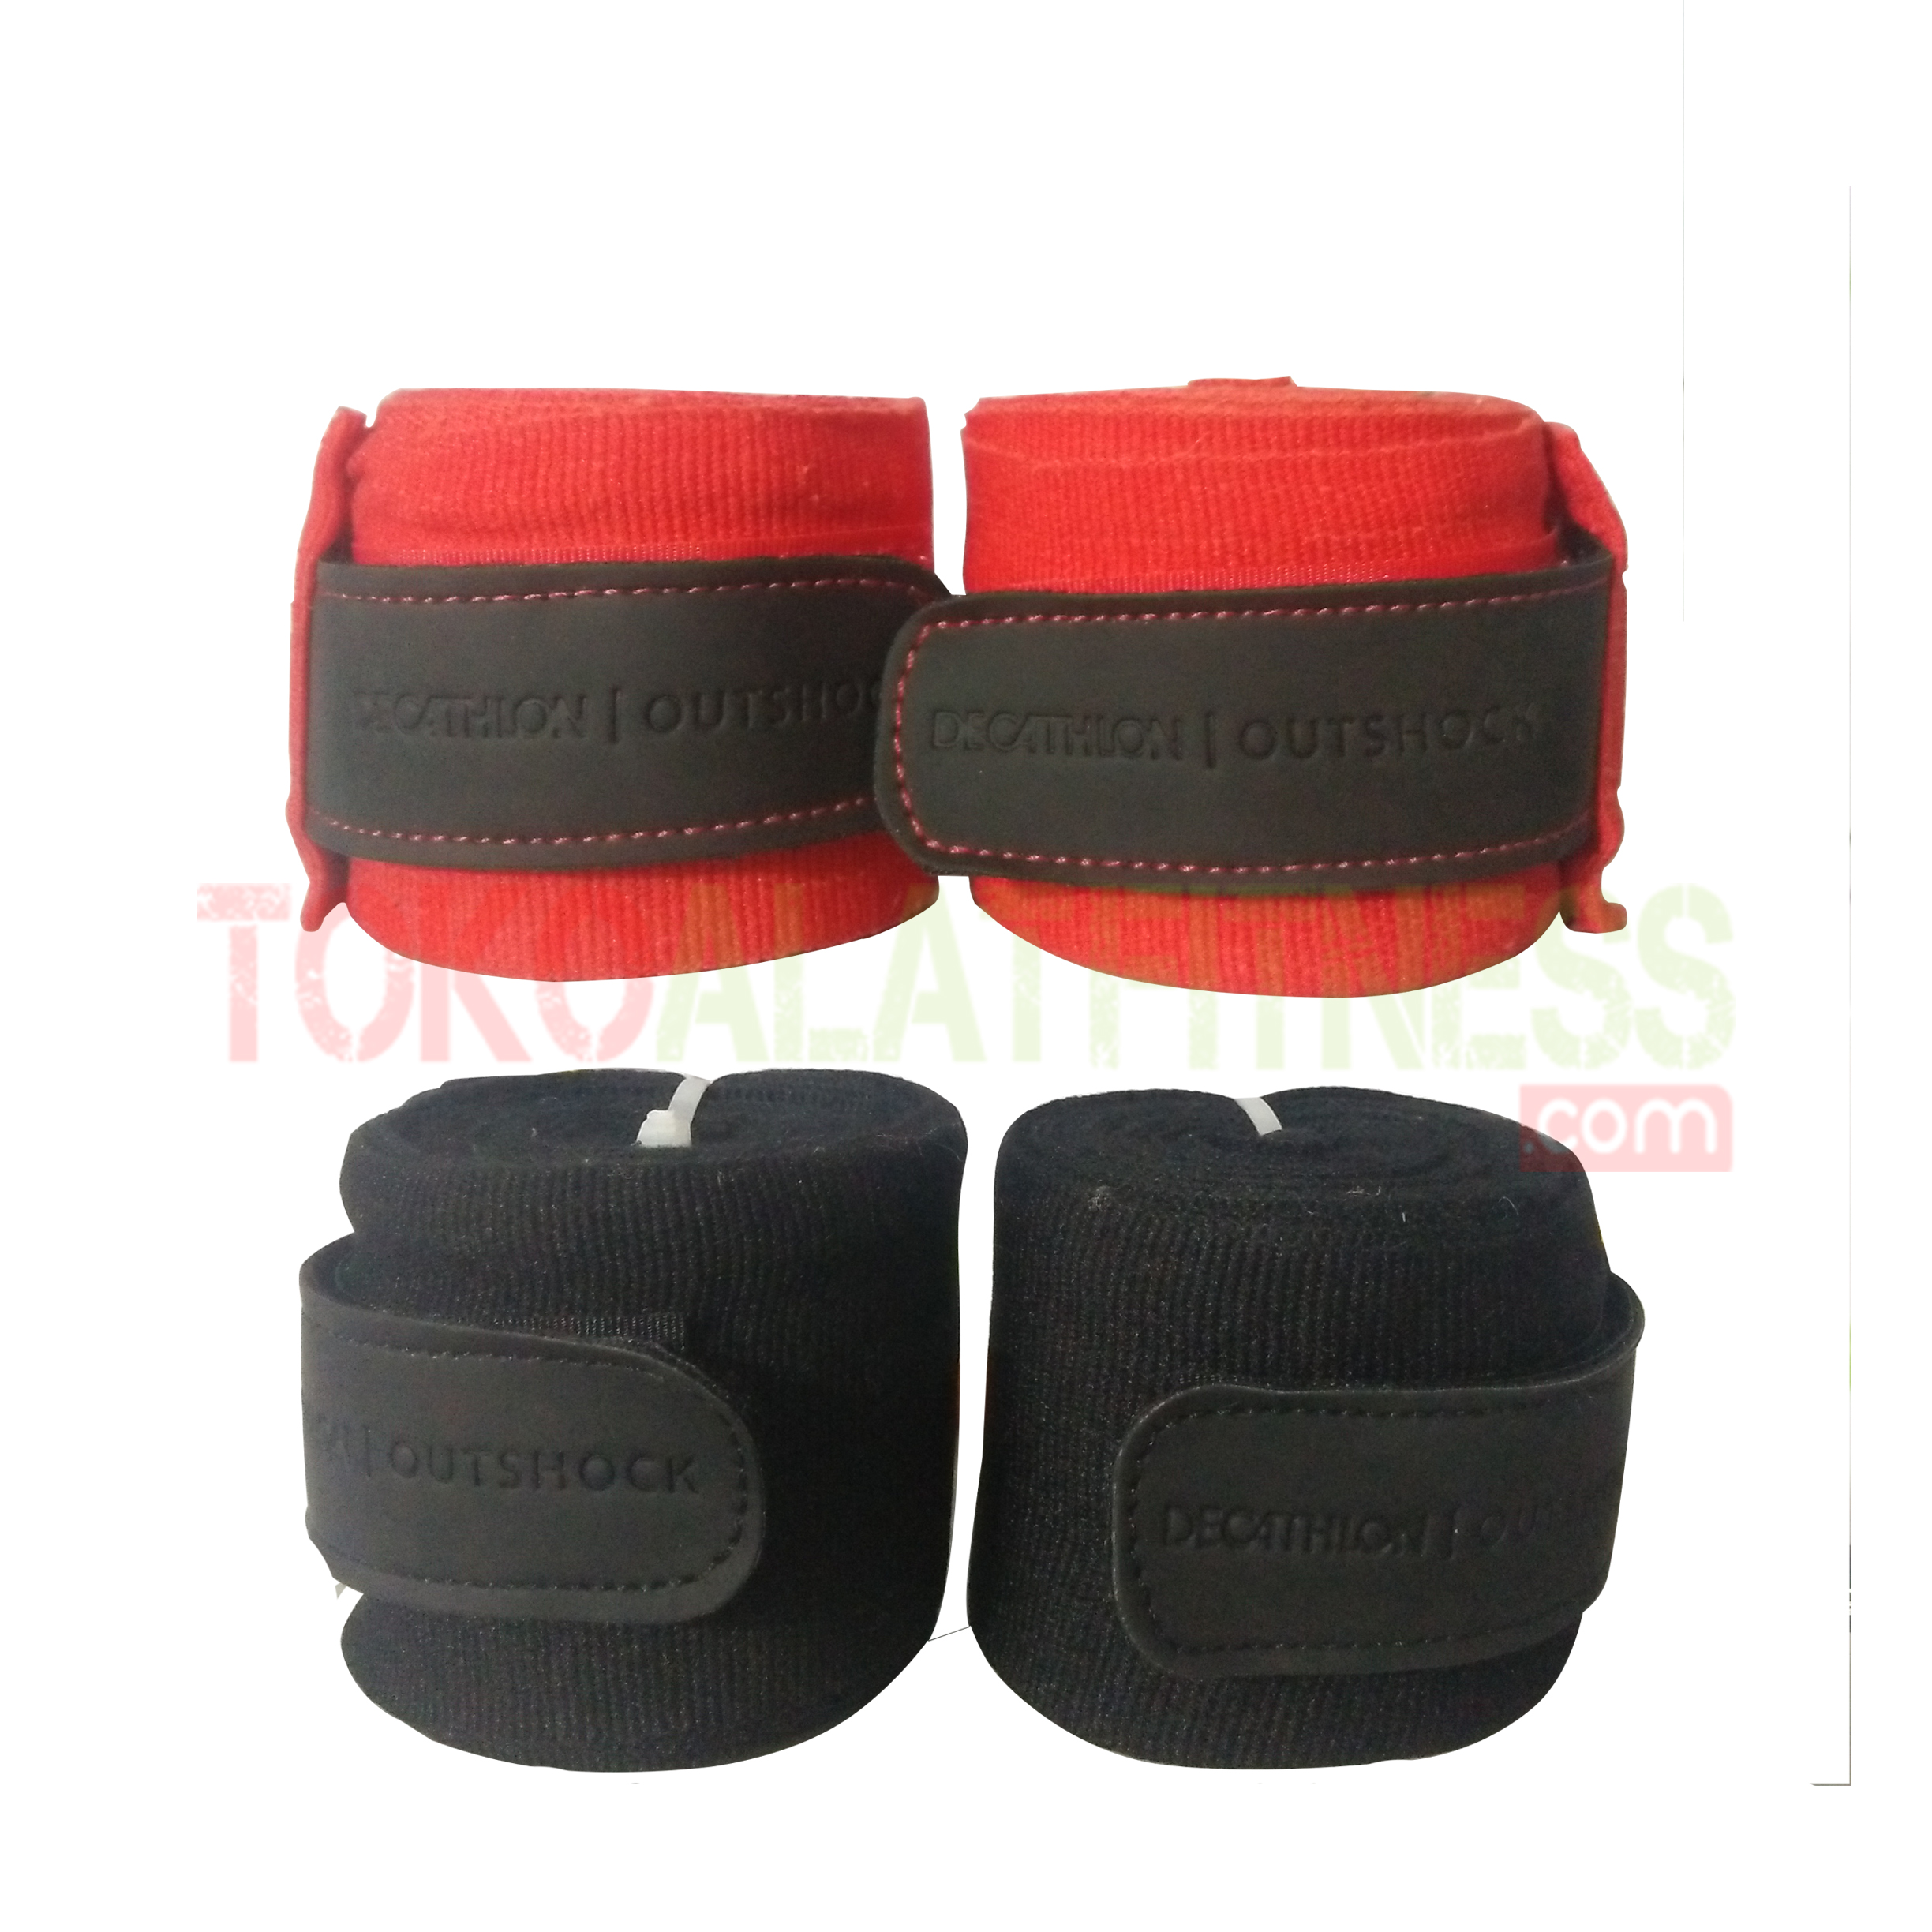 OUTSHOCK BOXING WRAP 4 M 1 1 - Outshock Boxing 500 4M, Hitam Wraps